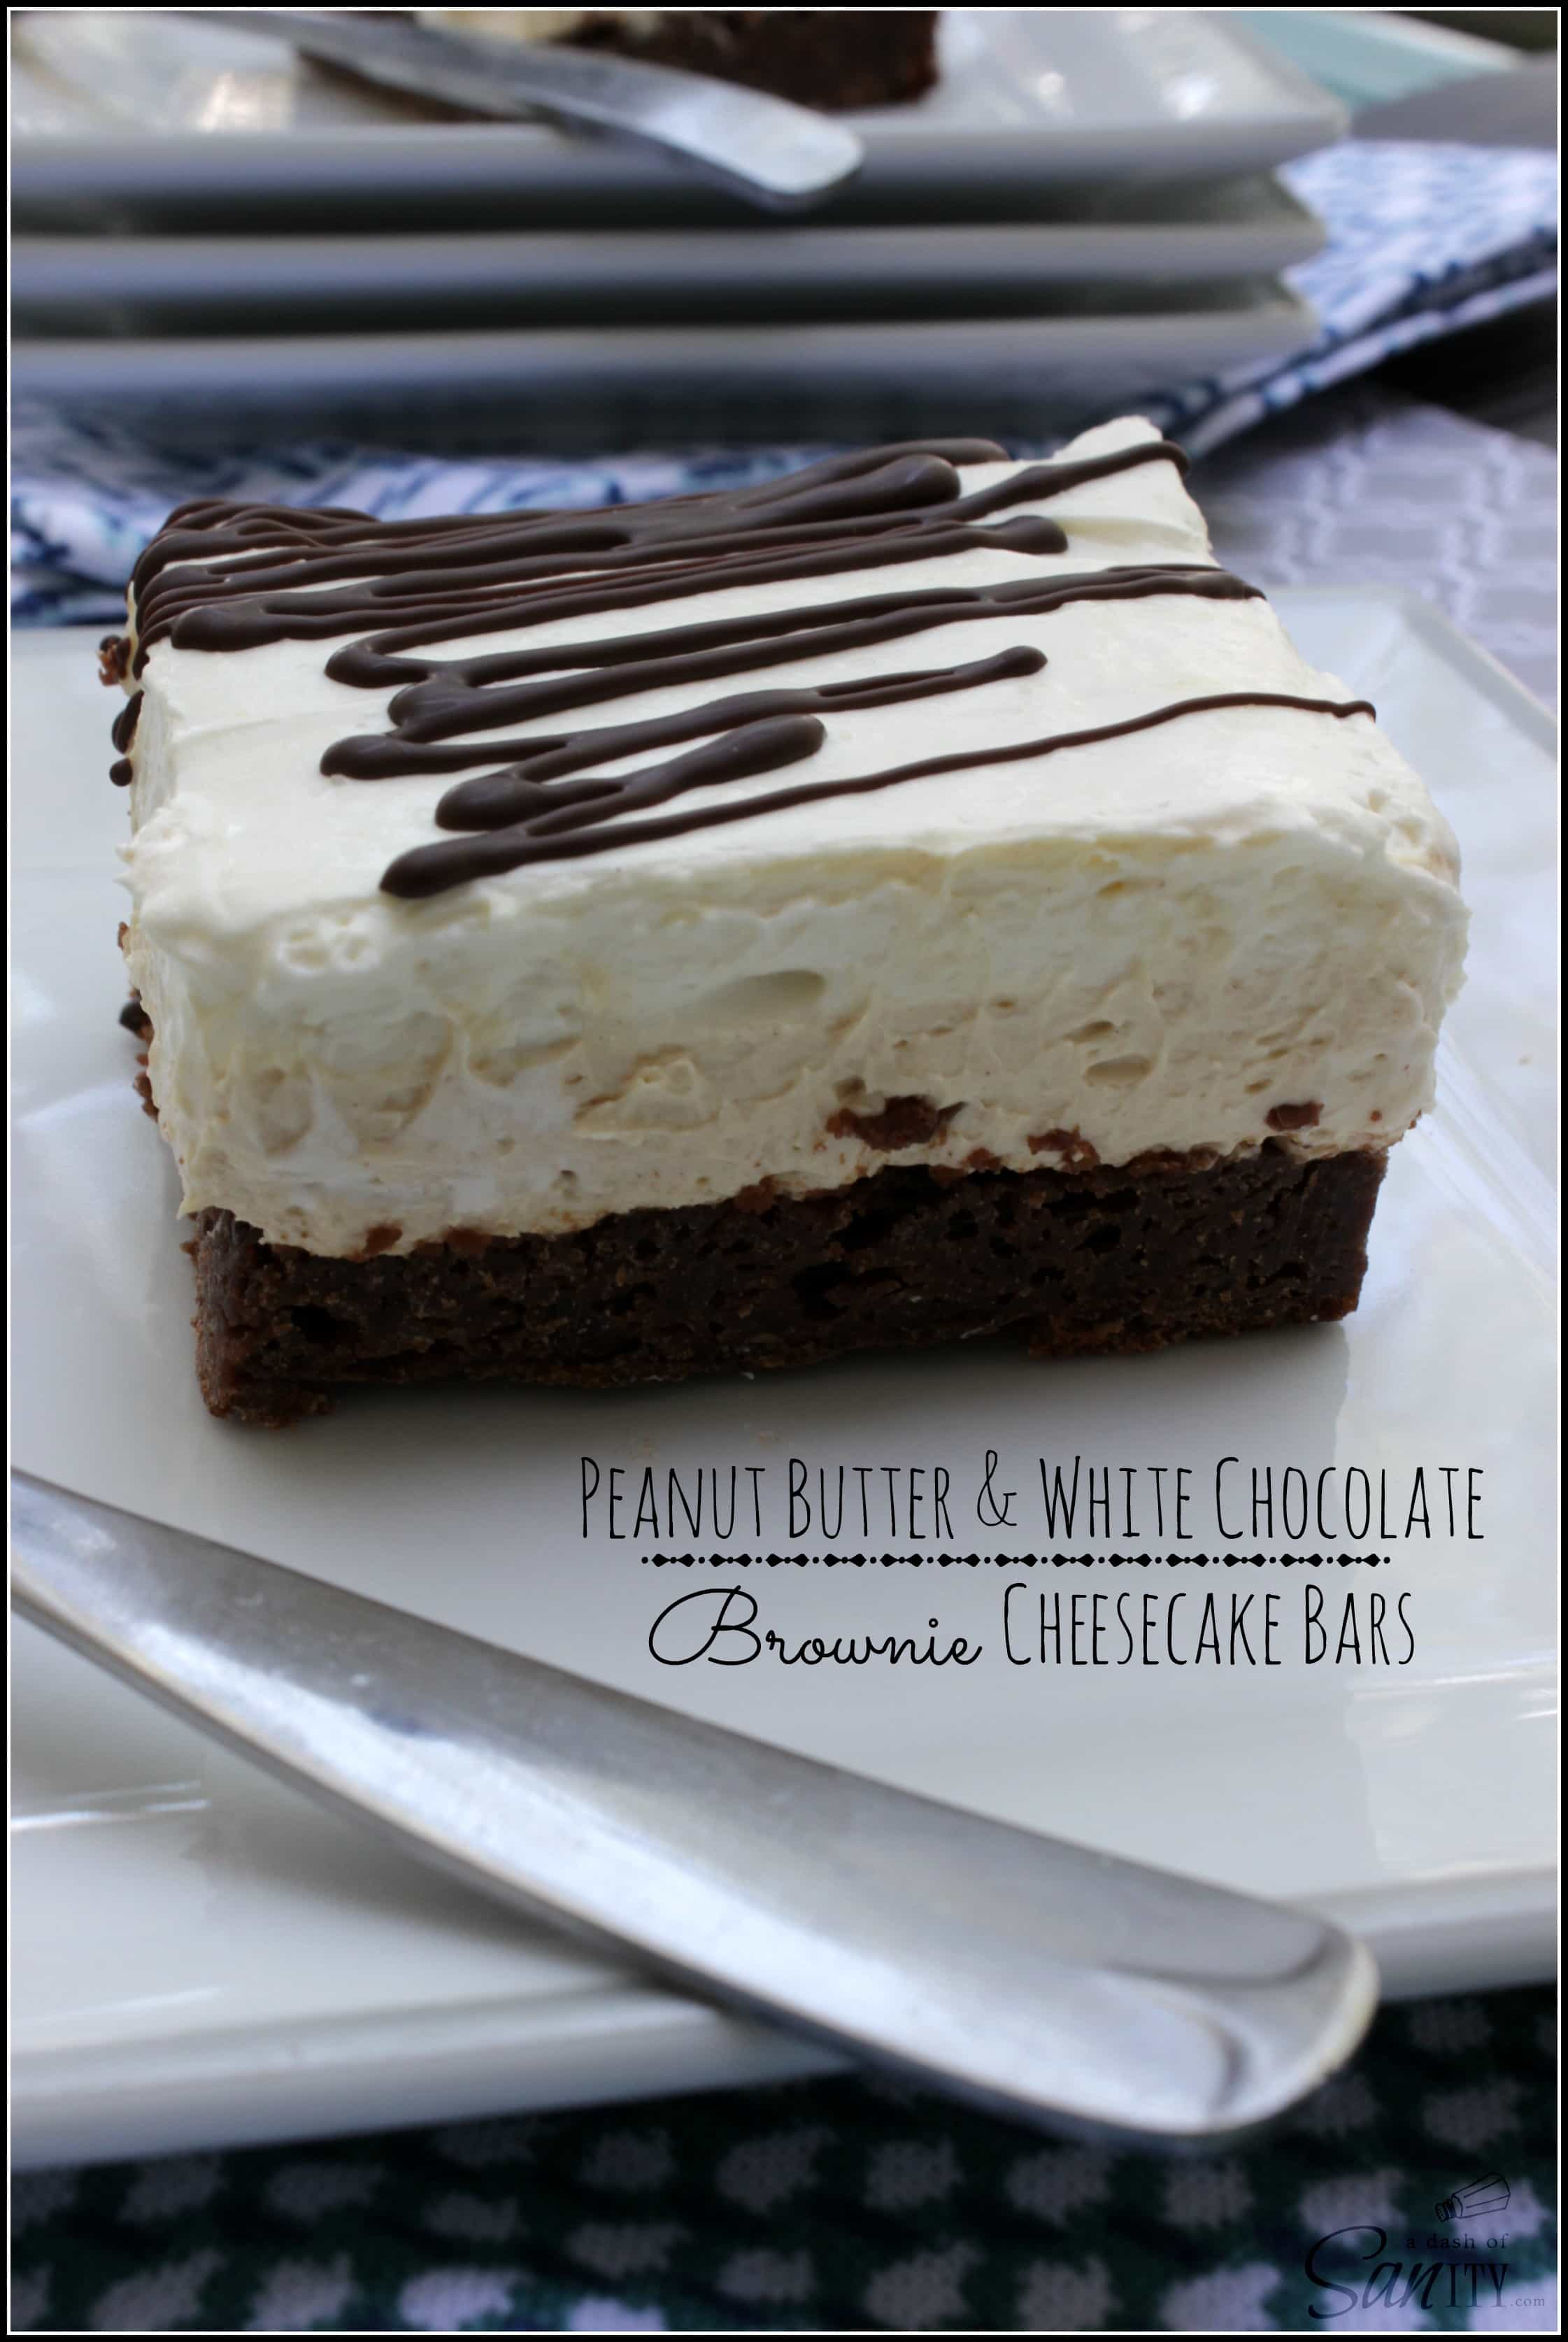 Peanut Butter & White Chocolate Brownie Cheesecake Bars